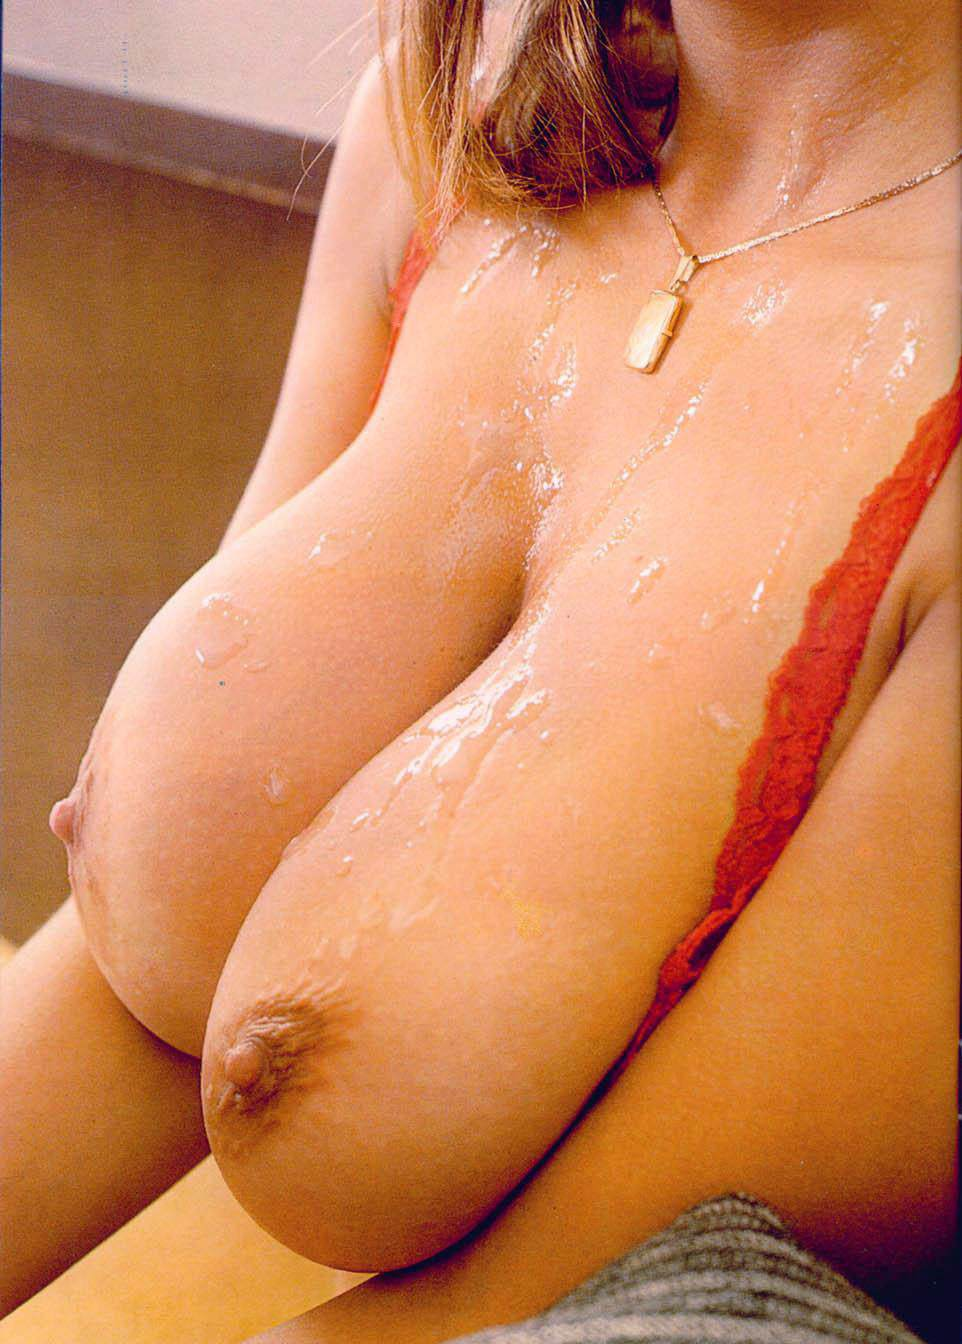 Big tit porn star christy canyon agree, the